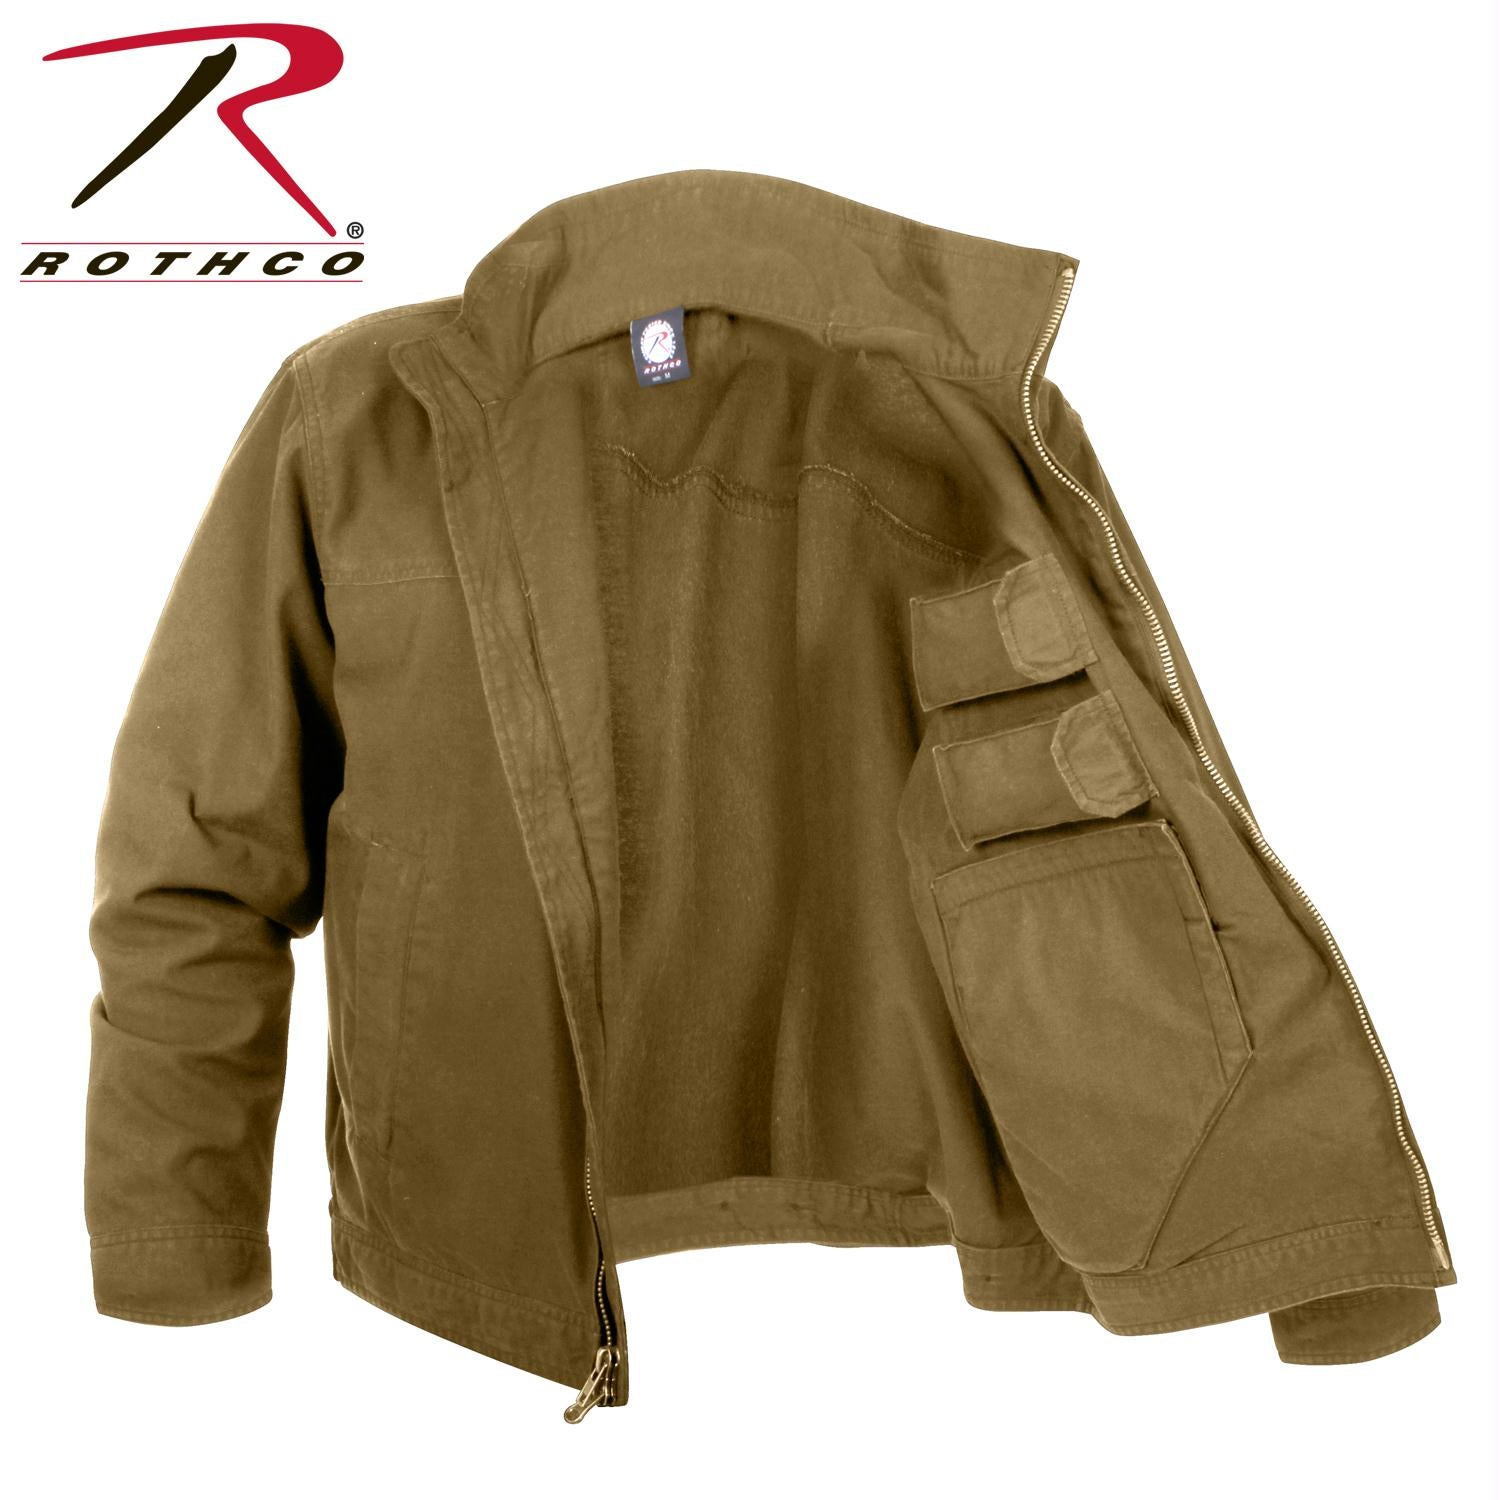 Rothco Lightweight Concealed Carry Jacket - Coyote Brown / M